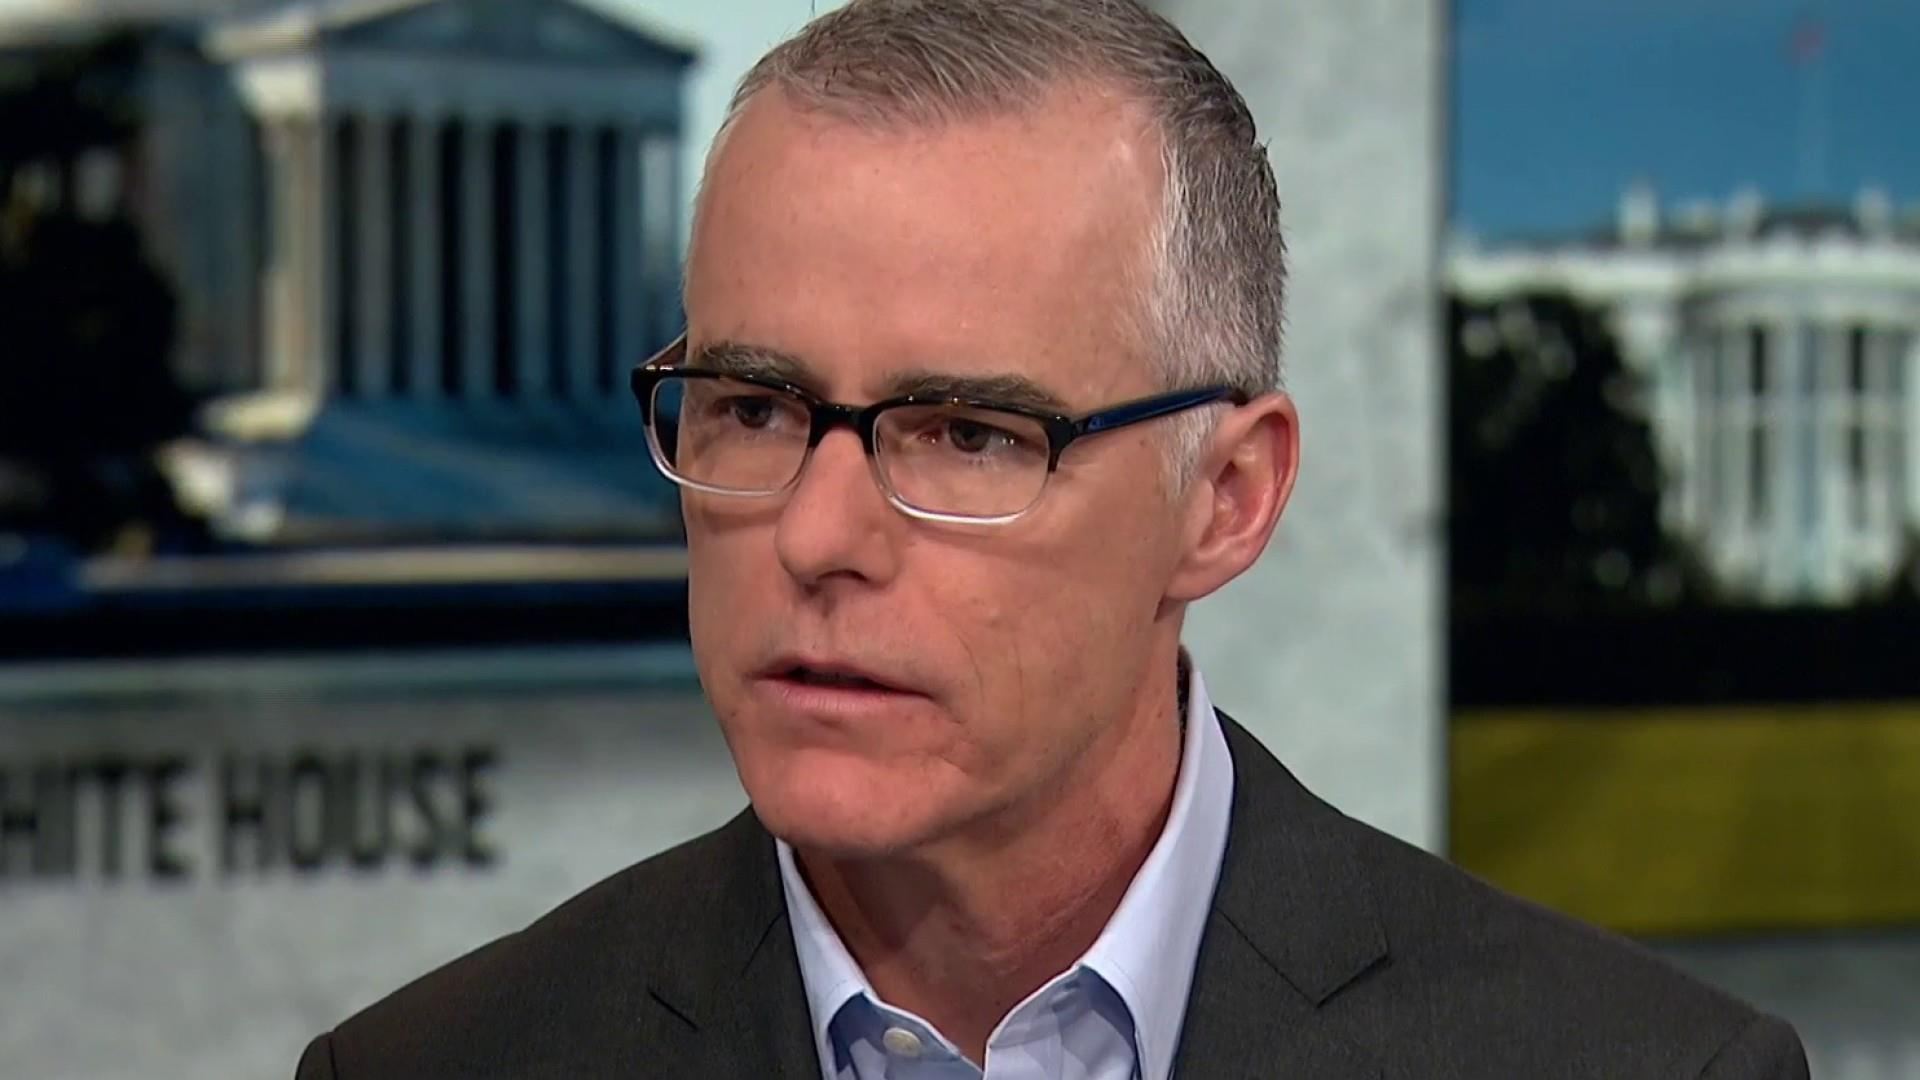 McCabe: I have seen the letter Trump wrote justifying the firing of Jim Comey